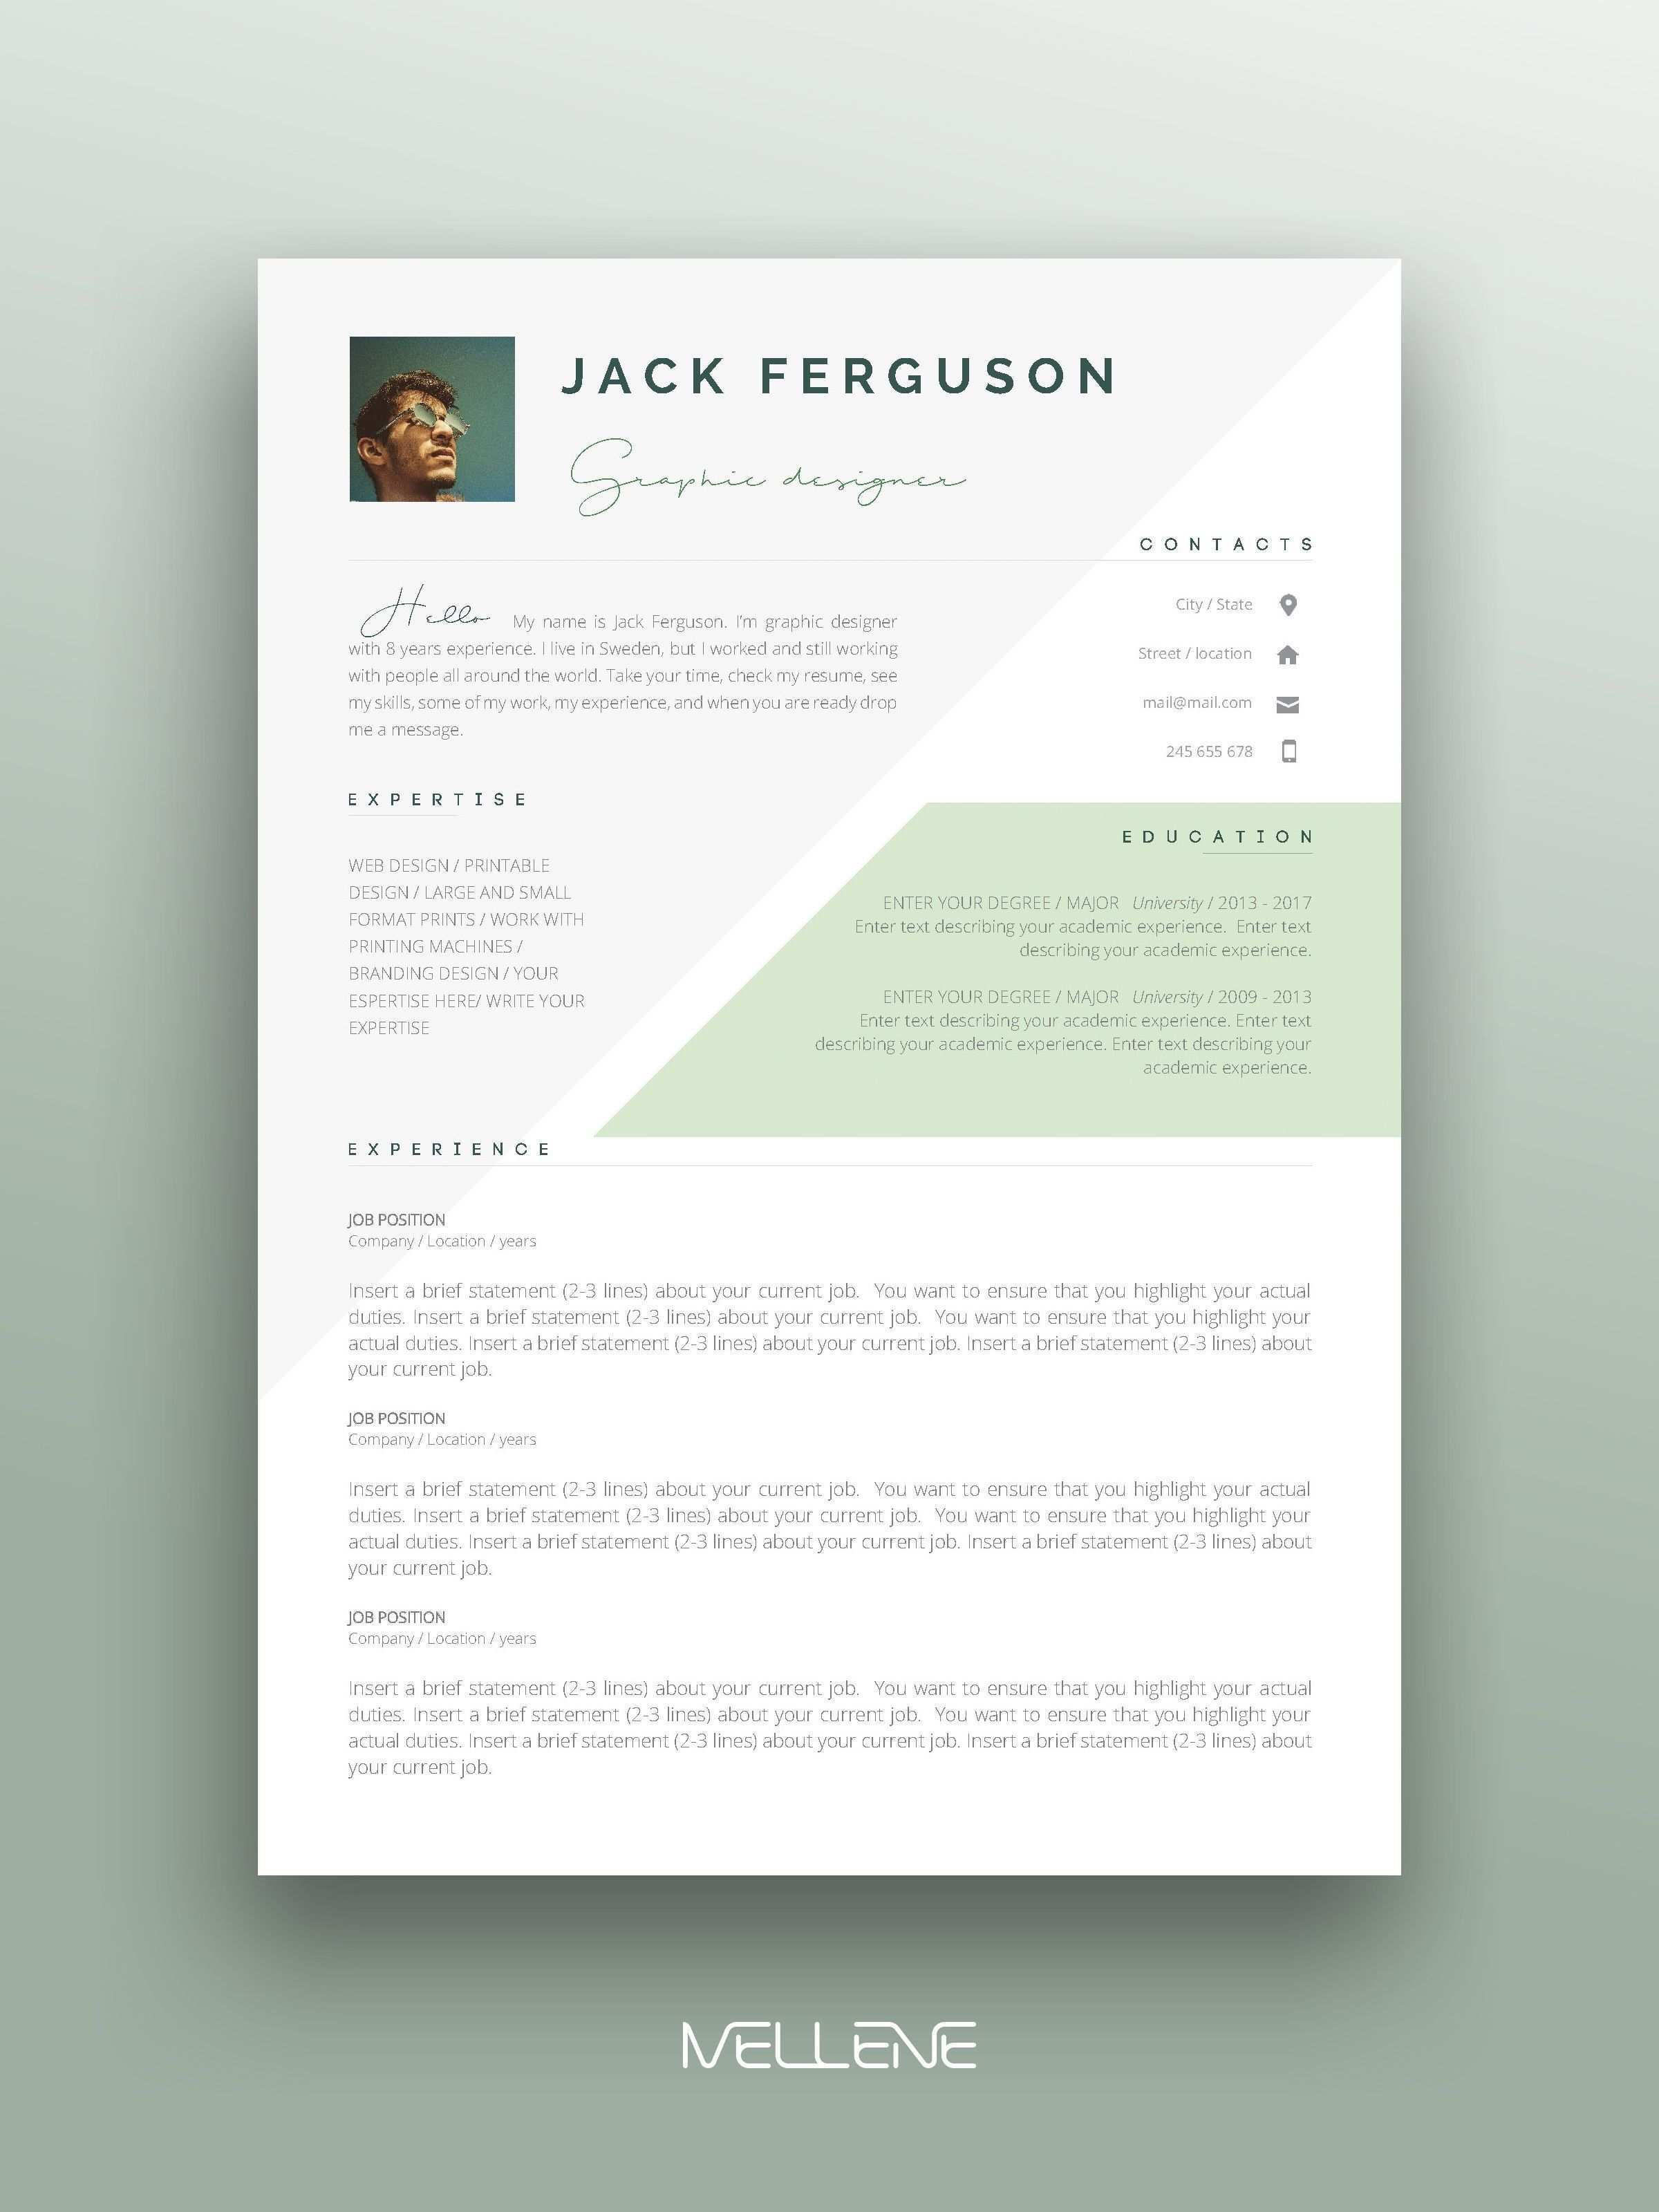 2 Page Resume Cv Design Cover Letter Free Icons And Usage Manual Professional Creati In 2020 Resume Design Creative Graphic Design Resume Resume Design Professional